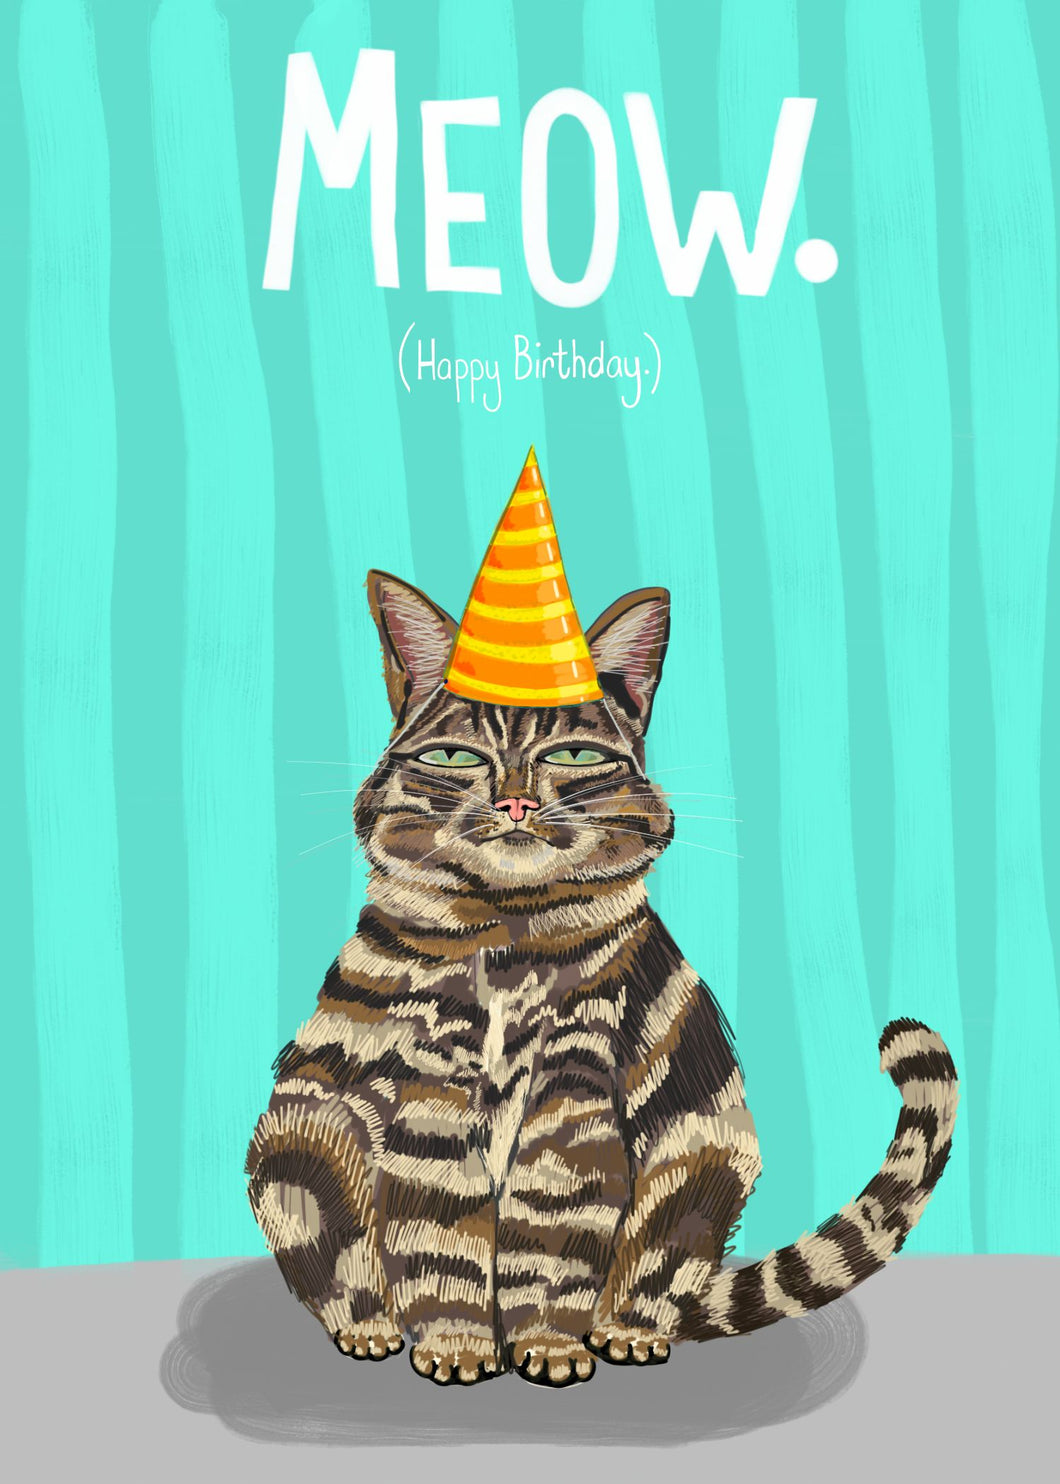 Happy Birthday Meow